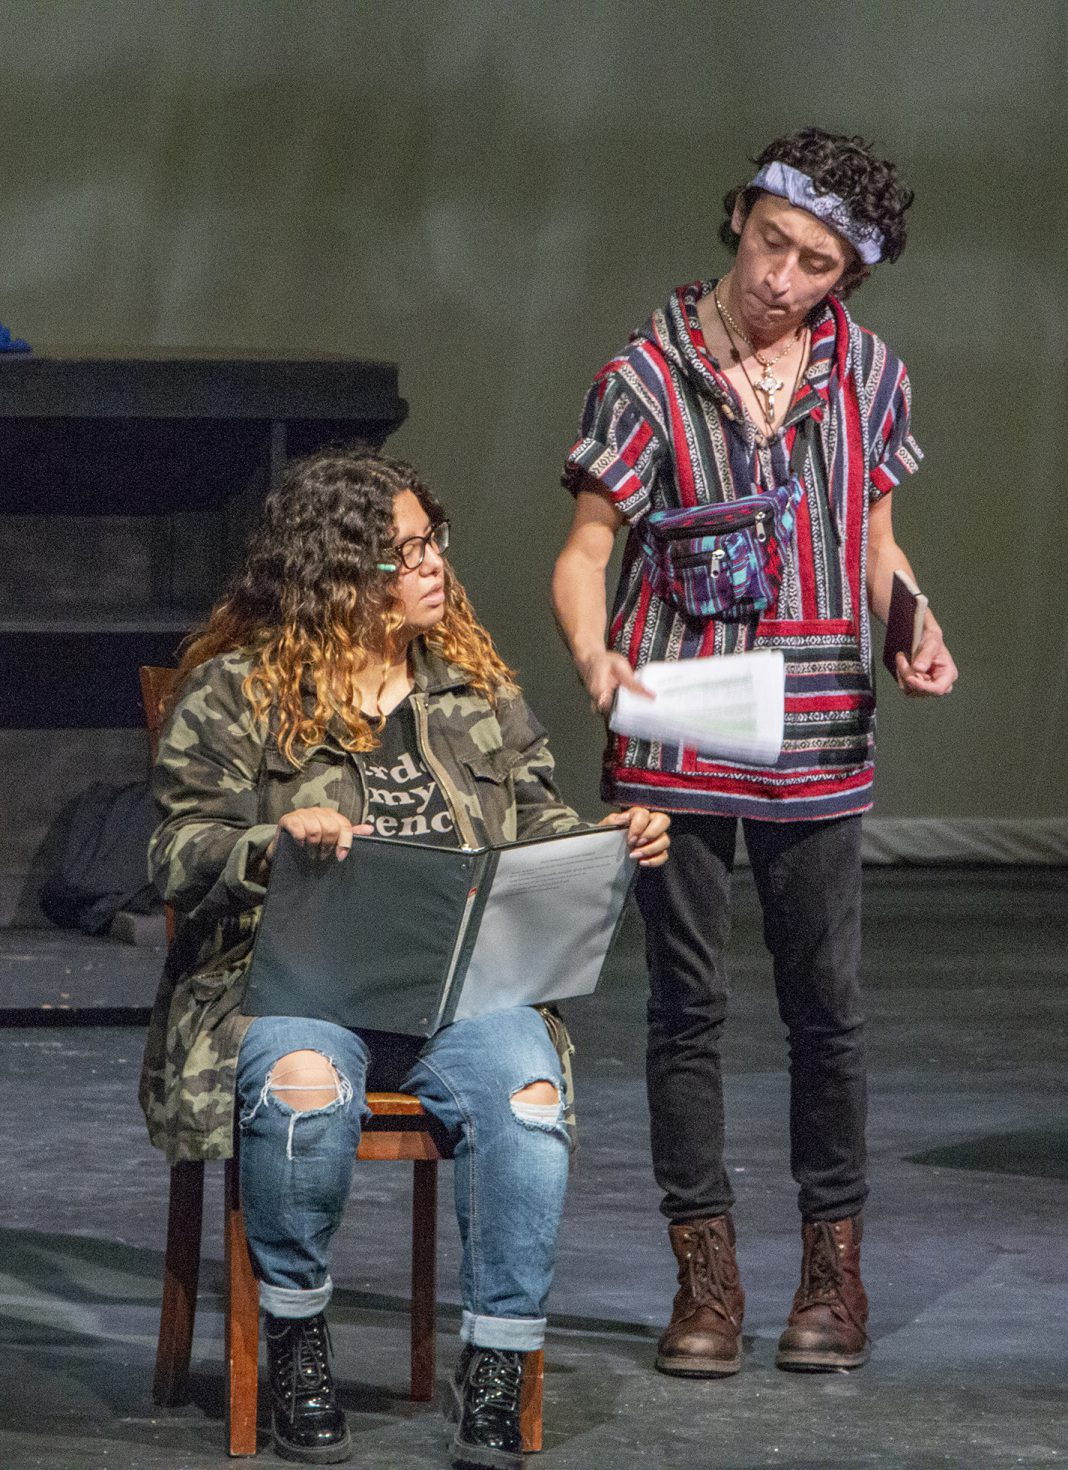 NE students Bianca Vaituulala and Jordi Salmeron rehearse lines for The Last Days of Judas Iscariot, which runs Nov. 7-10 on NE.